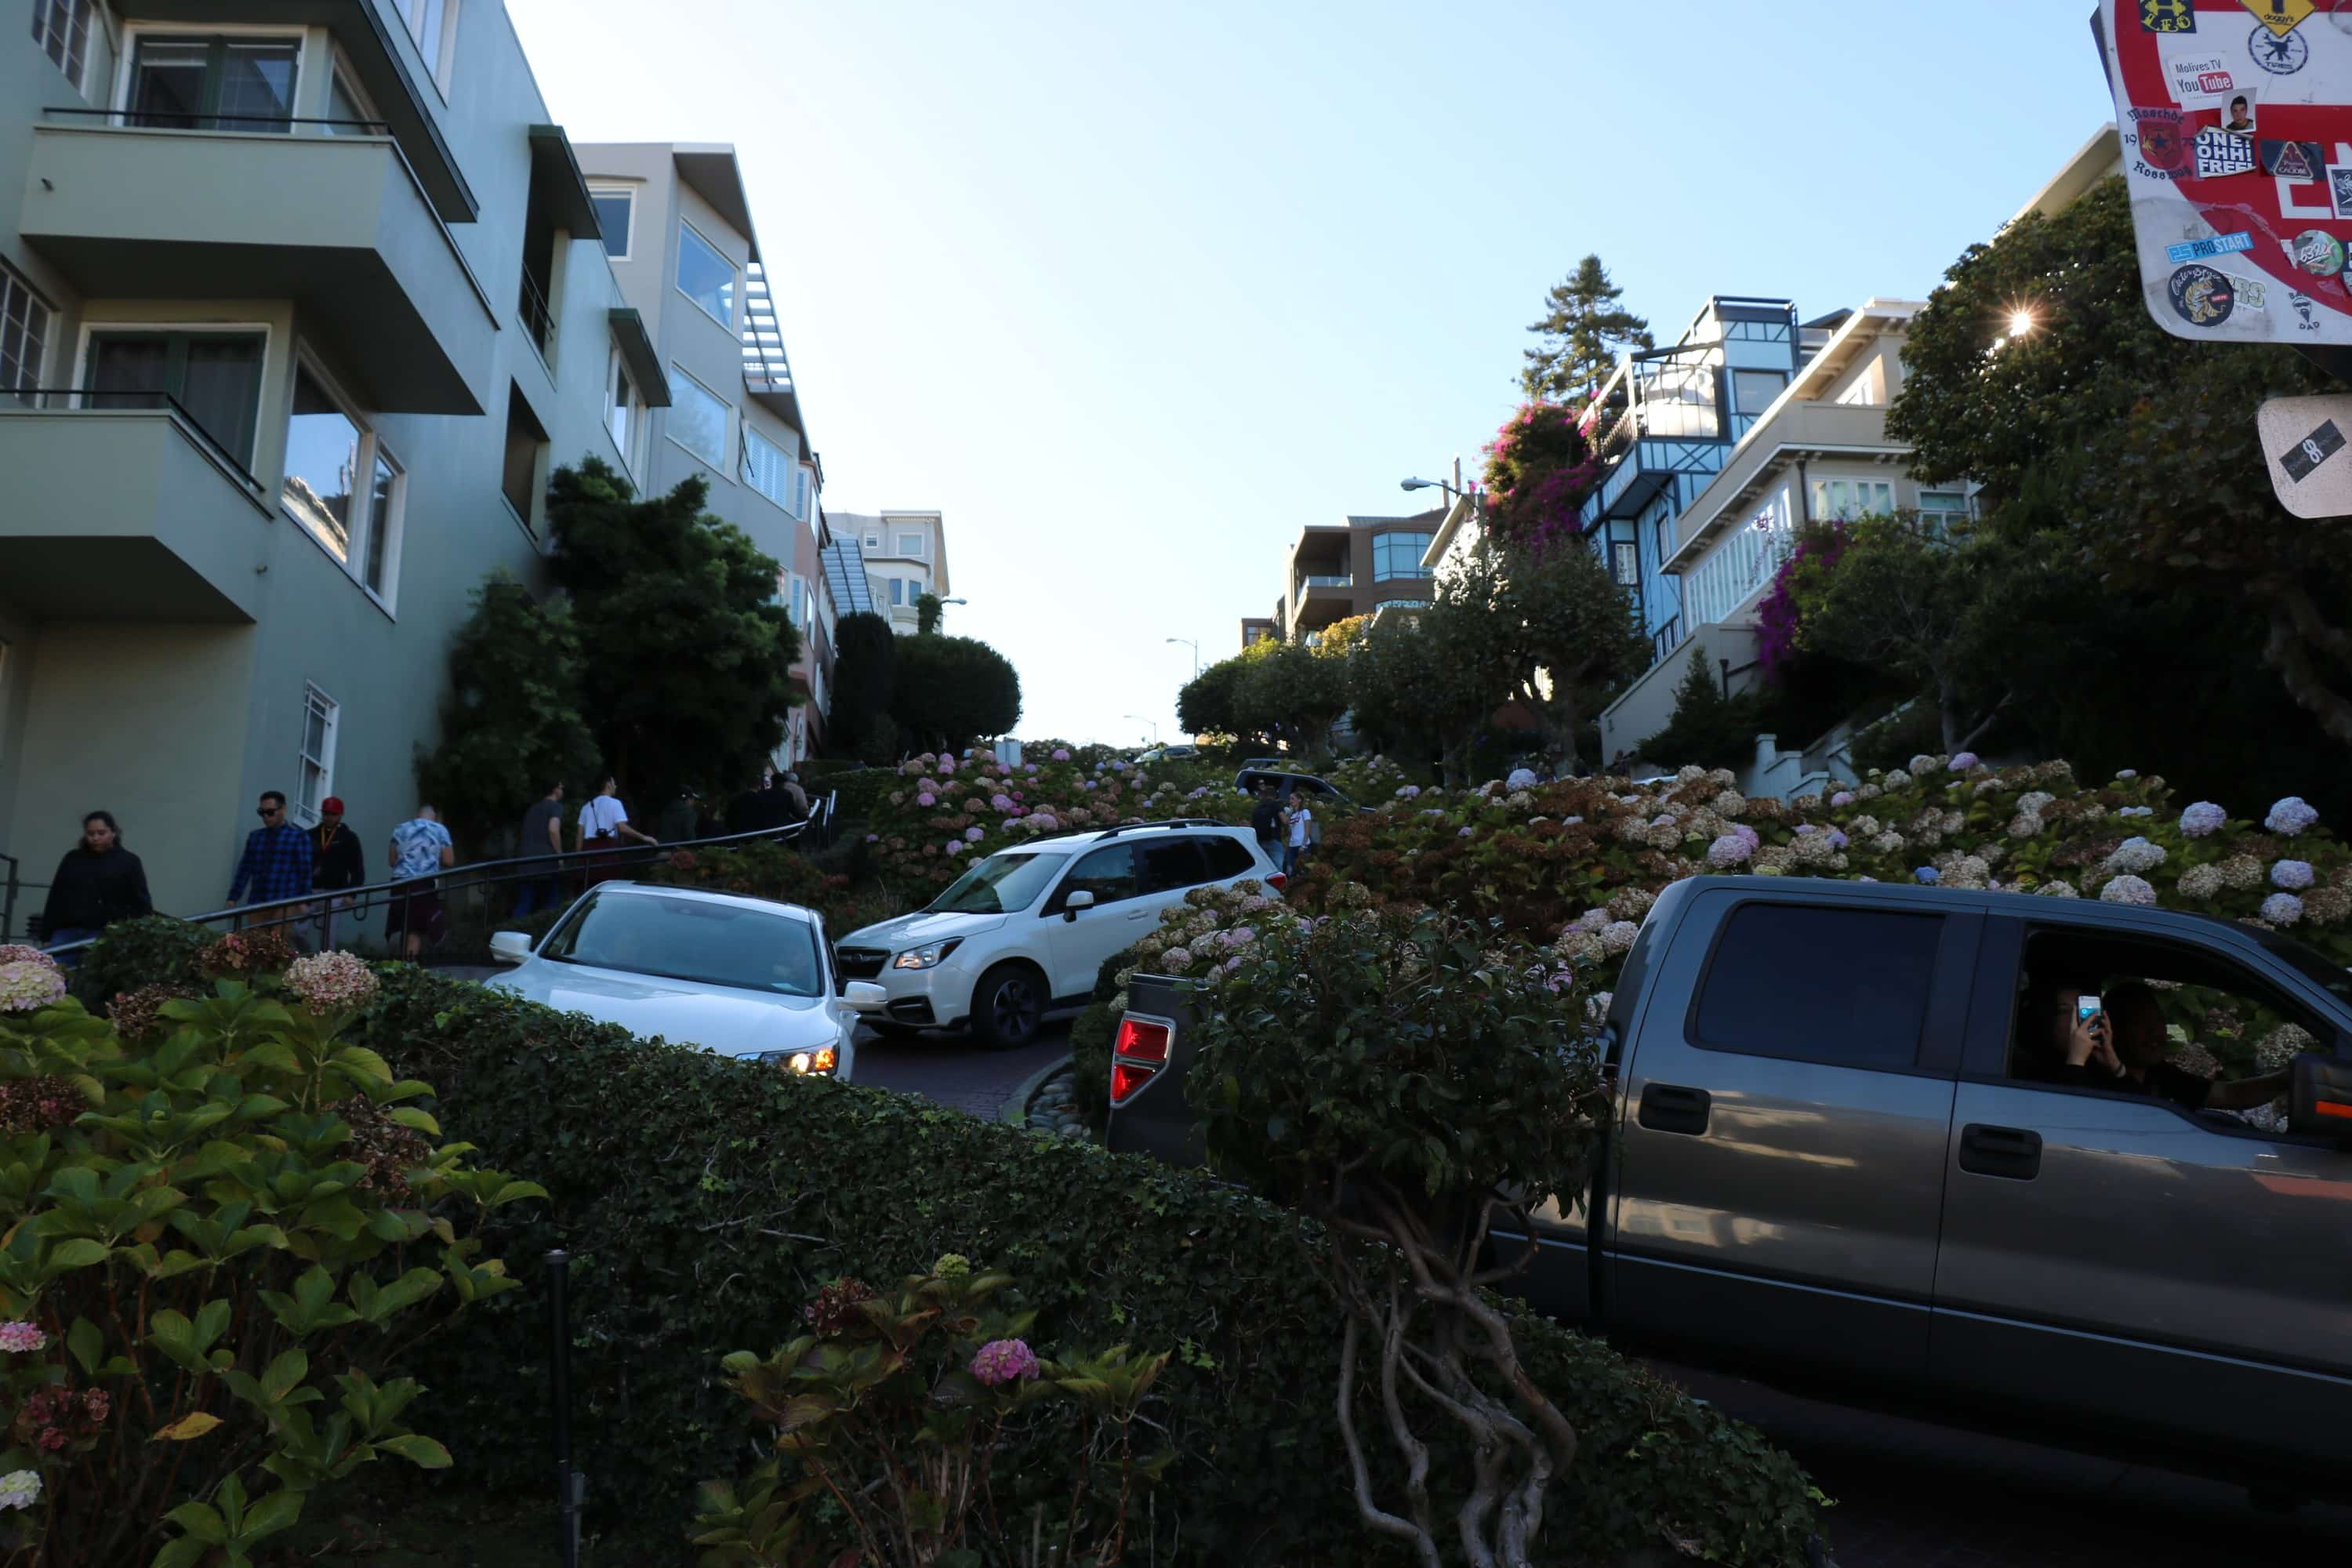 Four Days In San Francisco - Lombard Street